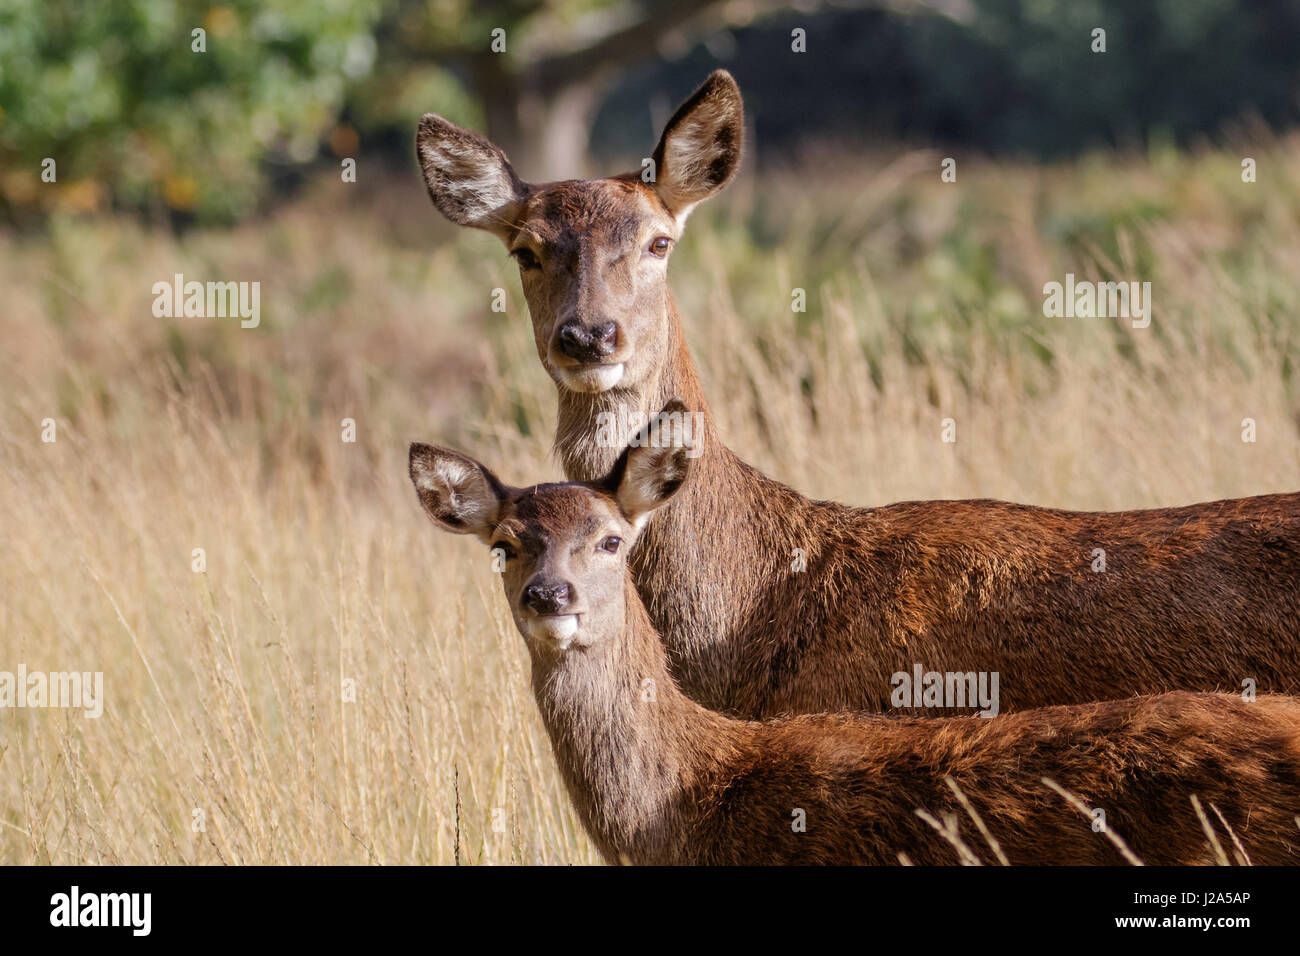 Red Deer female hind mum mother and young baby calf (Cervus elaphus) - Stock Image